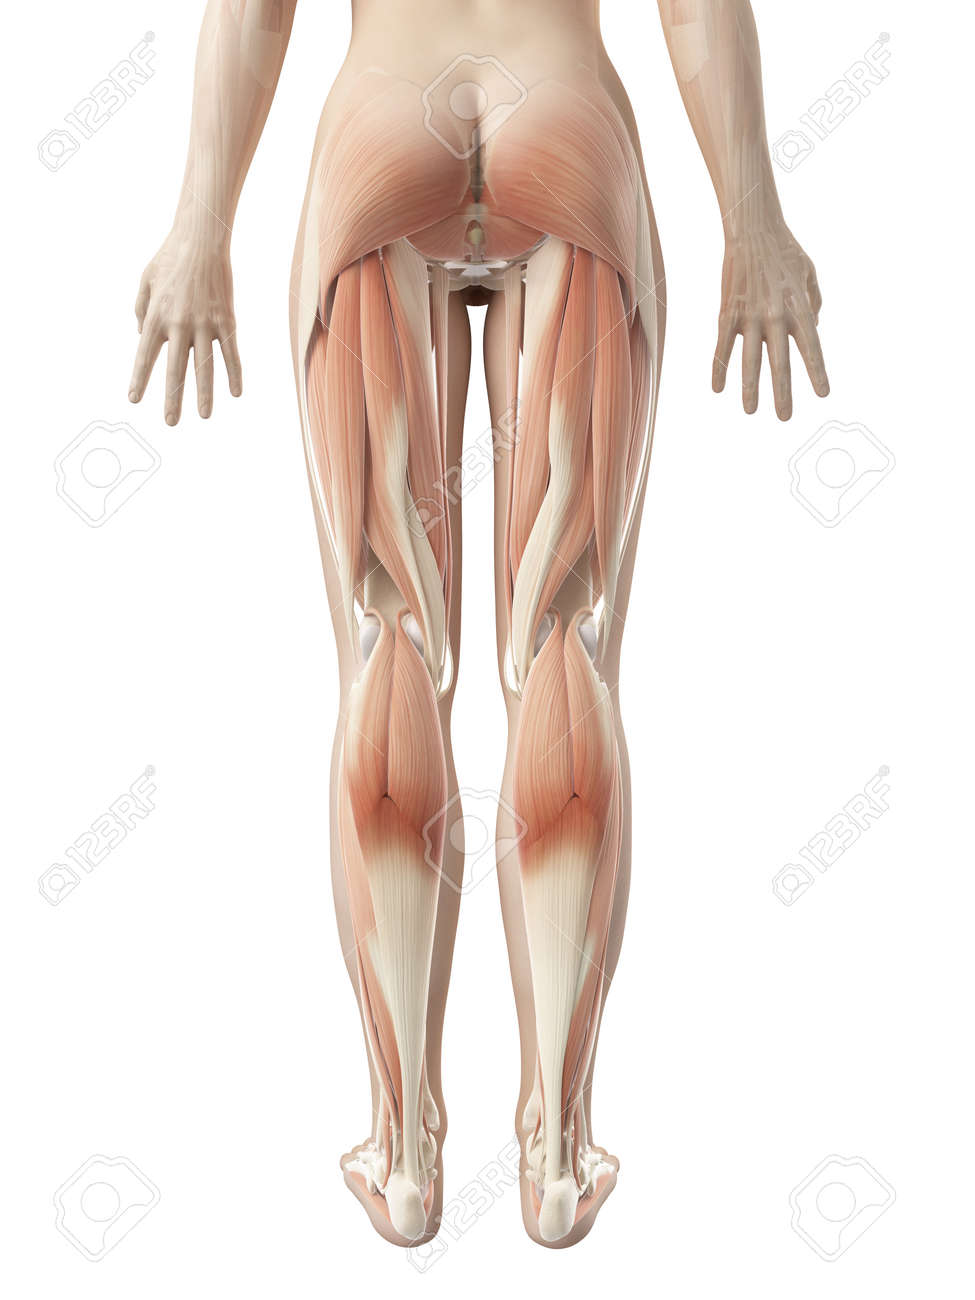 Female Leg Musculature Stock Photo, Picture And Royalty Free Image ...